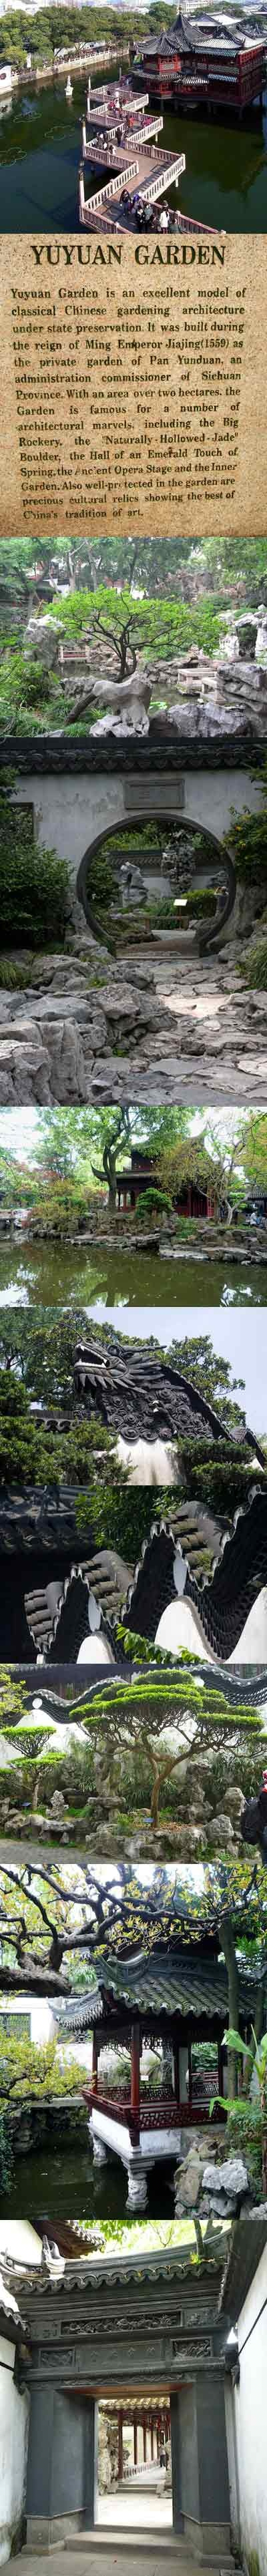 Yuyuan Garden is a famous classical garden located in Shanghai. It was finished in 1577 by a government officer of the Ming Dynasty (1368-1644) named Pan Yunduan. Yu in Chinese means pleasing and satisfying, and this garden was specially built for Pans parents as a place for them to enjoy a tranquil and happy time in their old age.